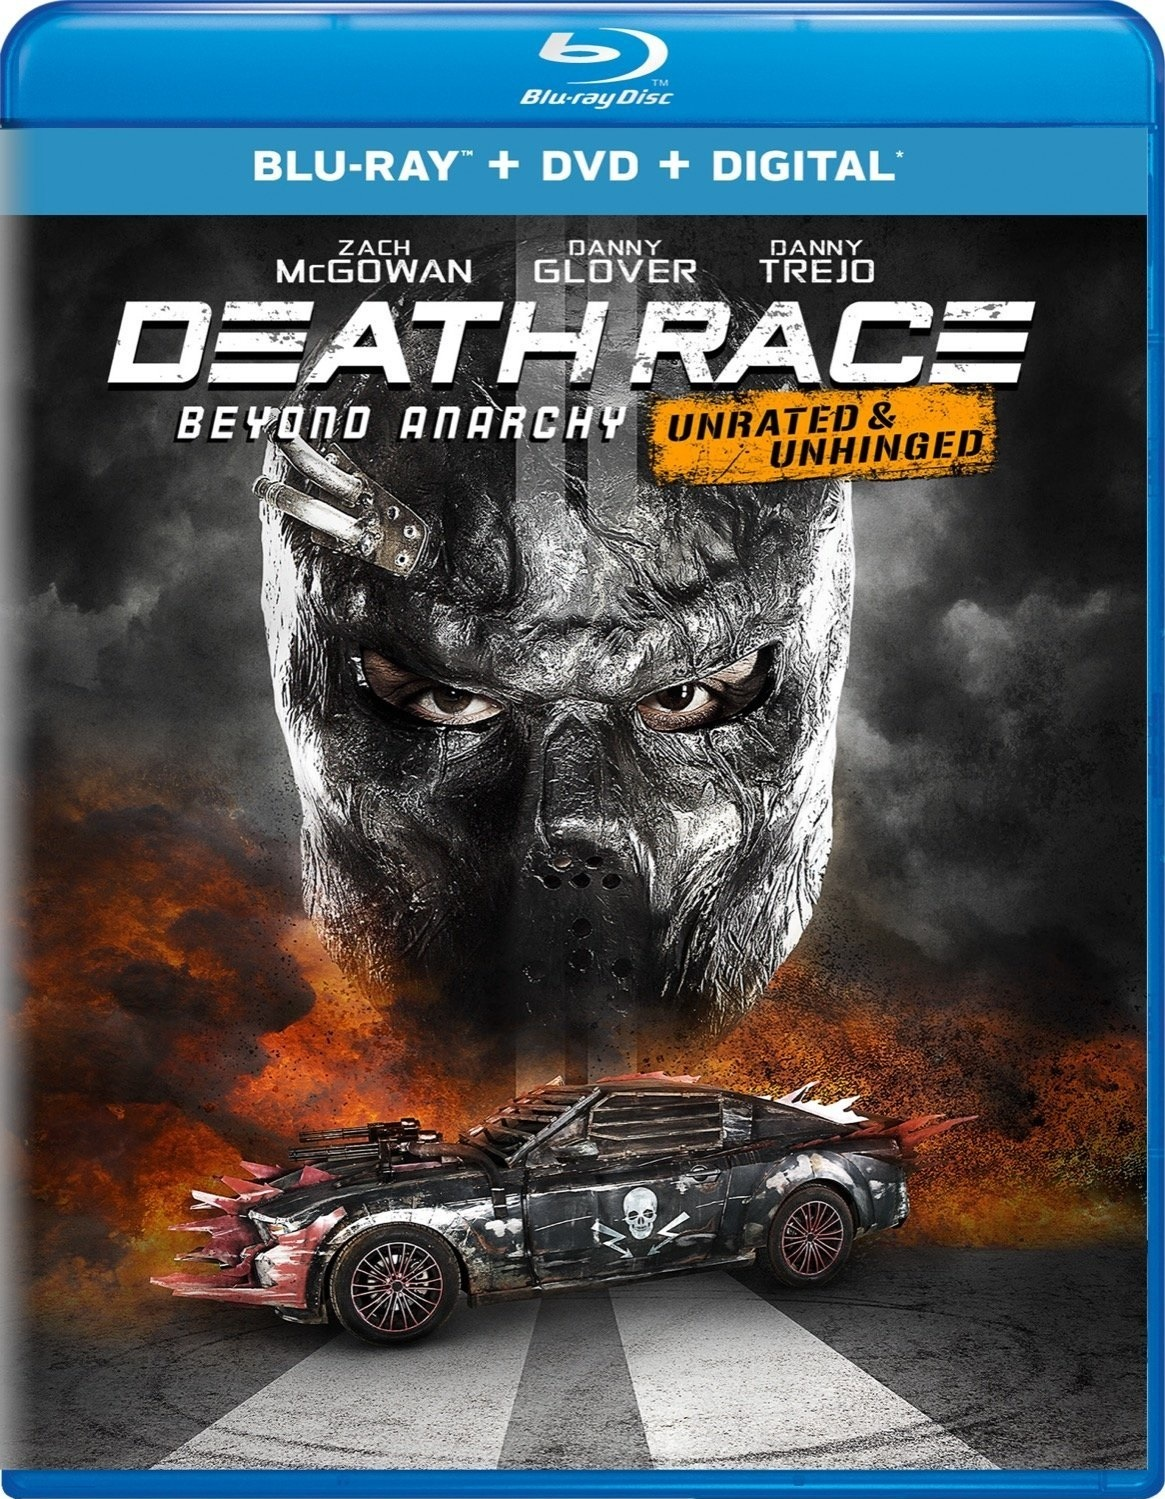 Death Race: Beyond Anarchy (Unrated & Unhinged)(Blu-ray)(Region Free)